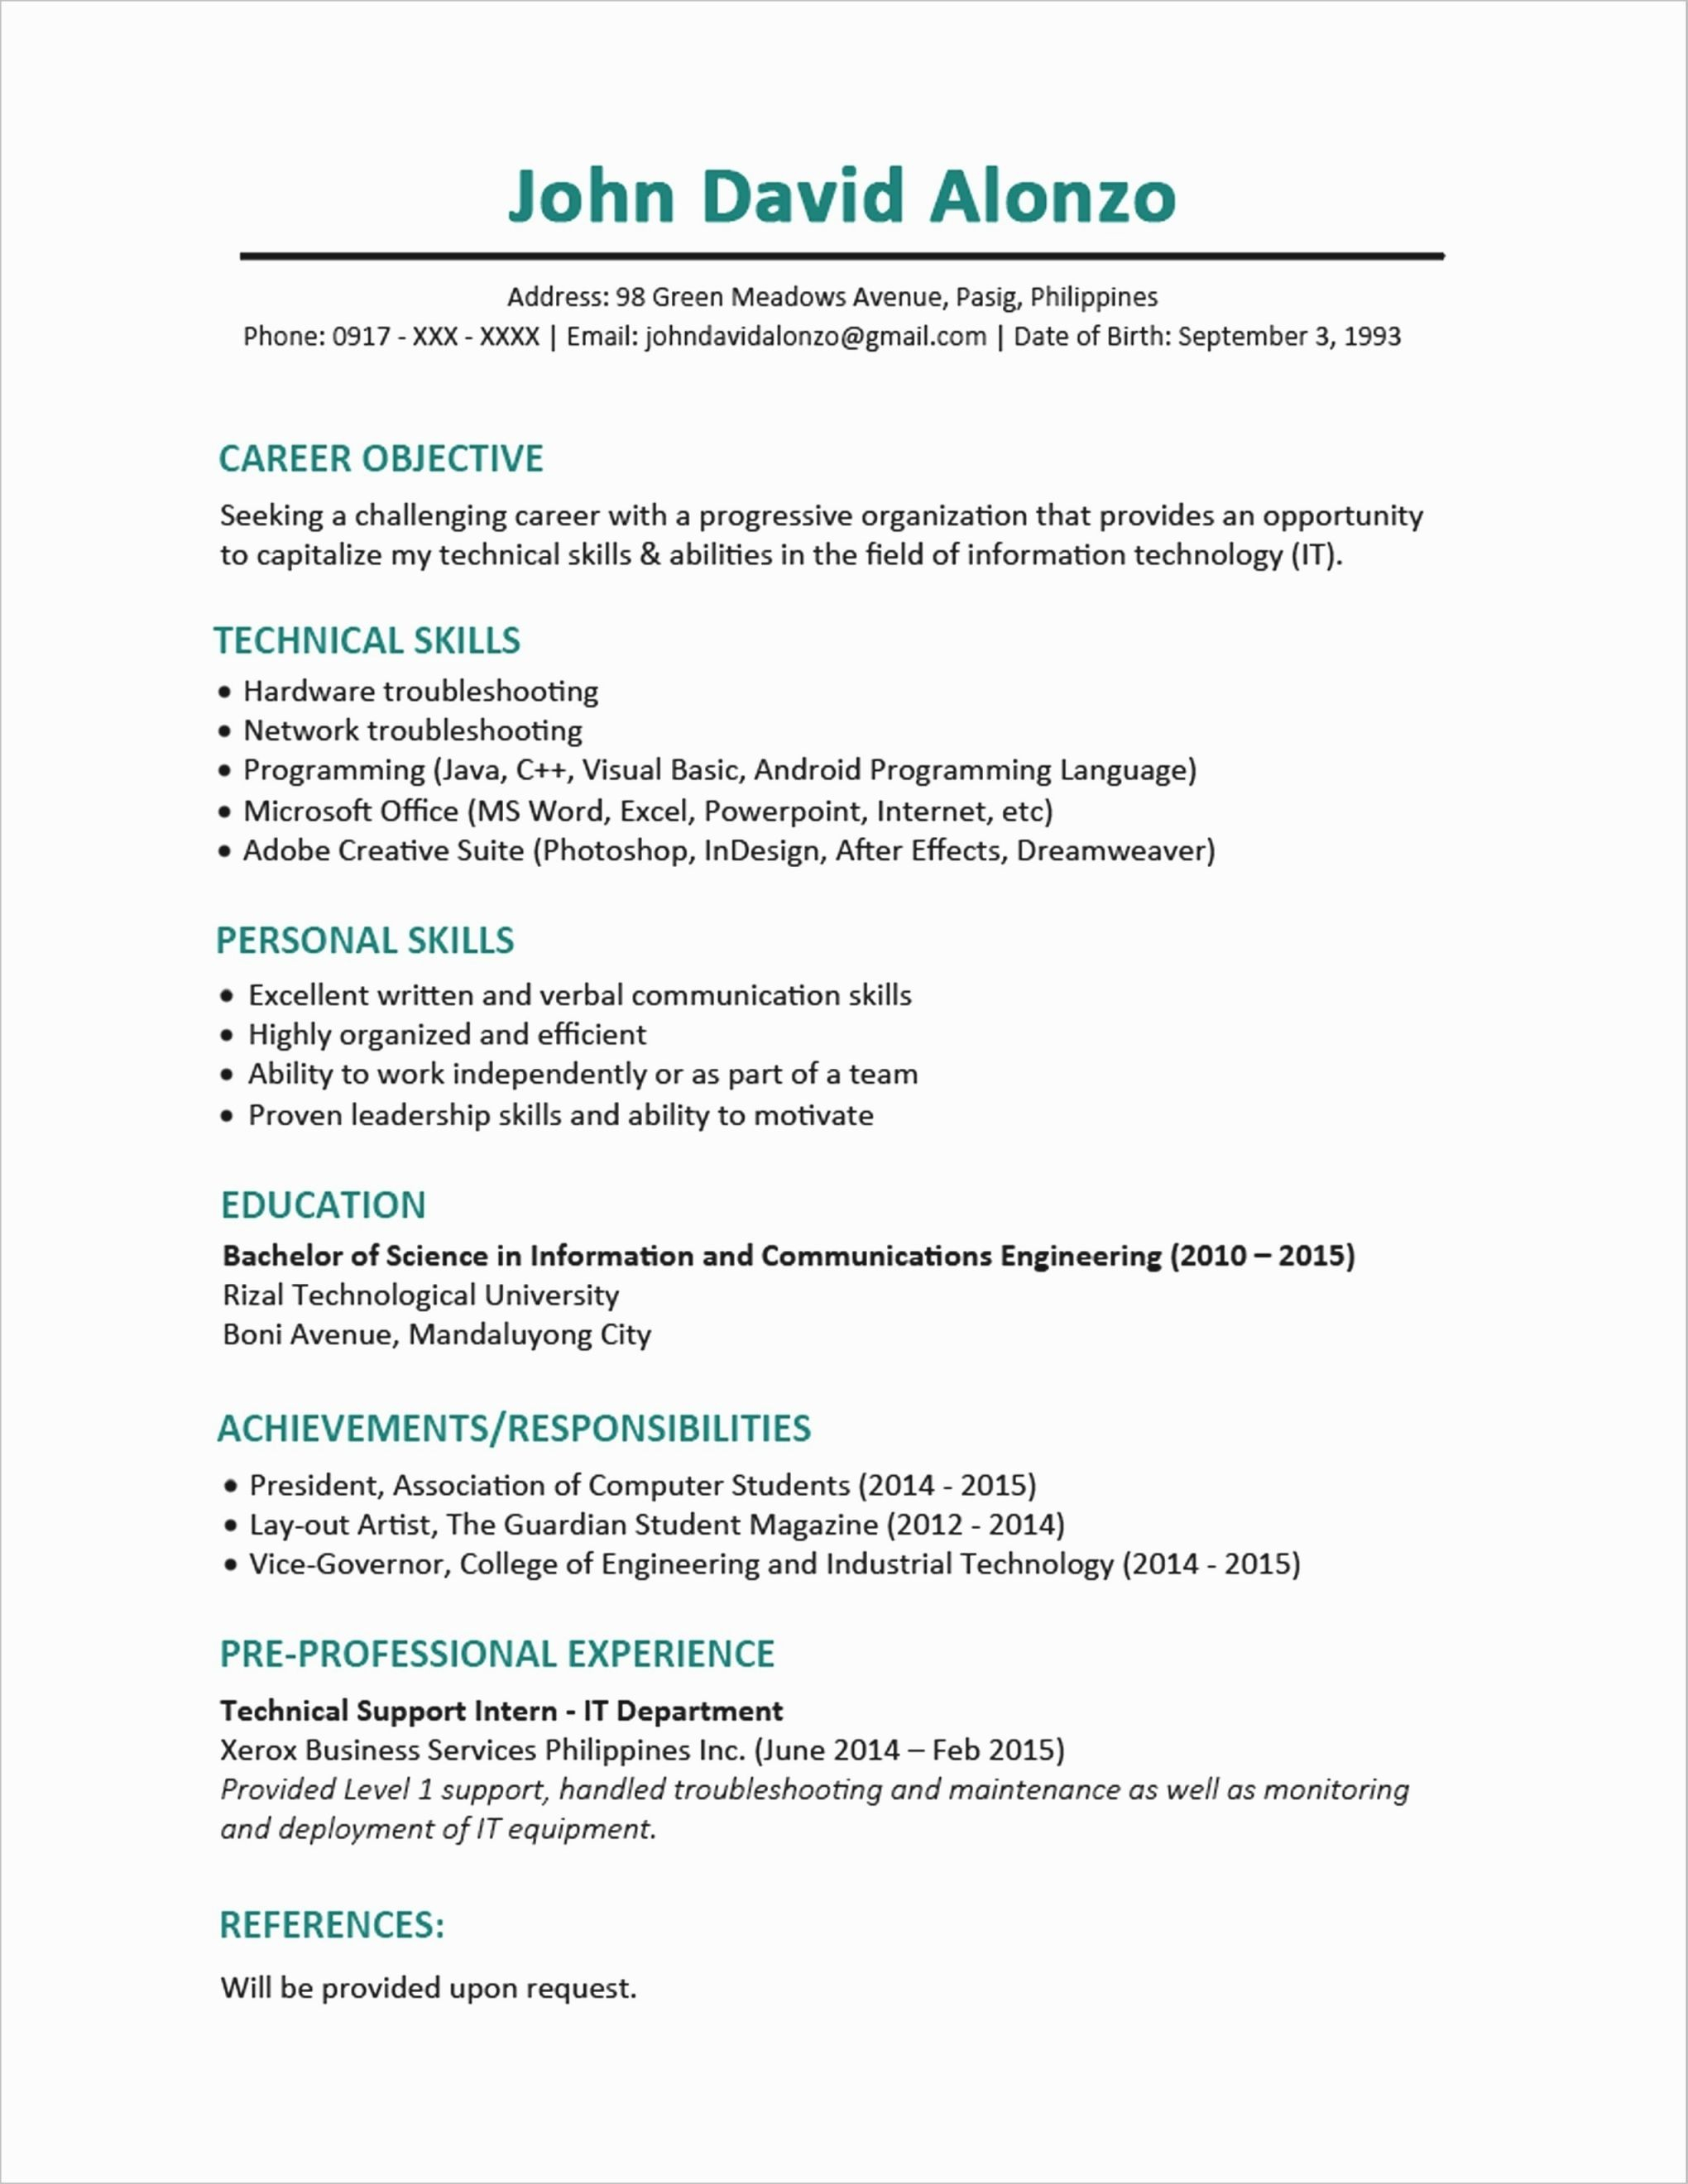 office equipment skills Collection-fice Equipment List for Resume 21 fice Equipment List for Resume 19-a